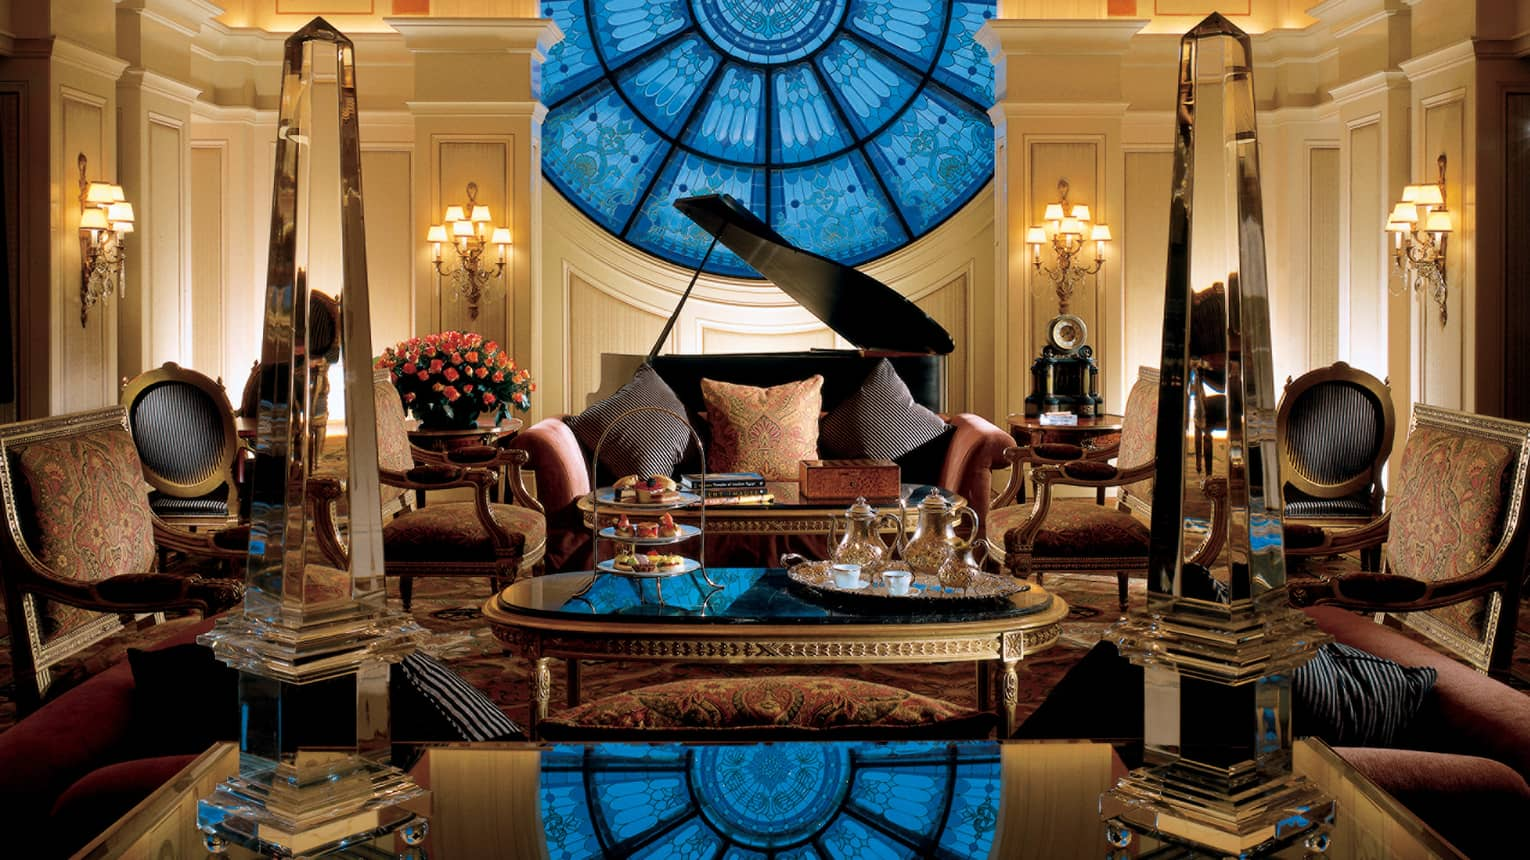 Dramatic blue circular stained-glass window over Tea Lounge grand piano, sofas